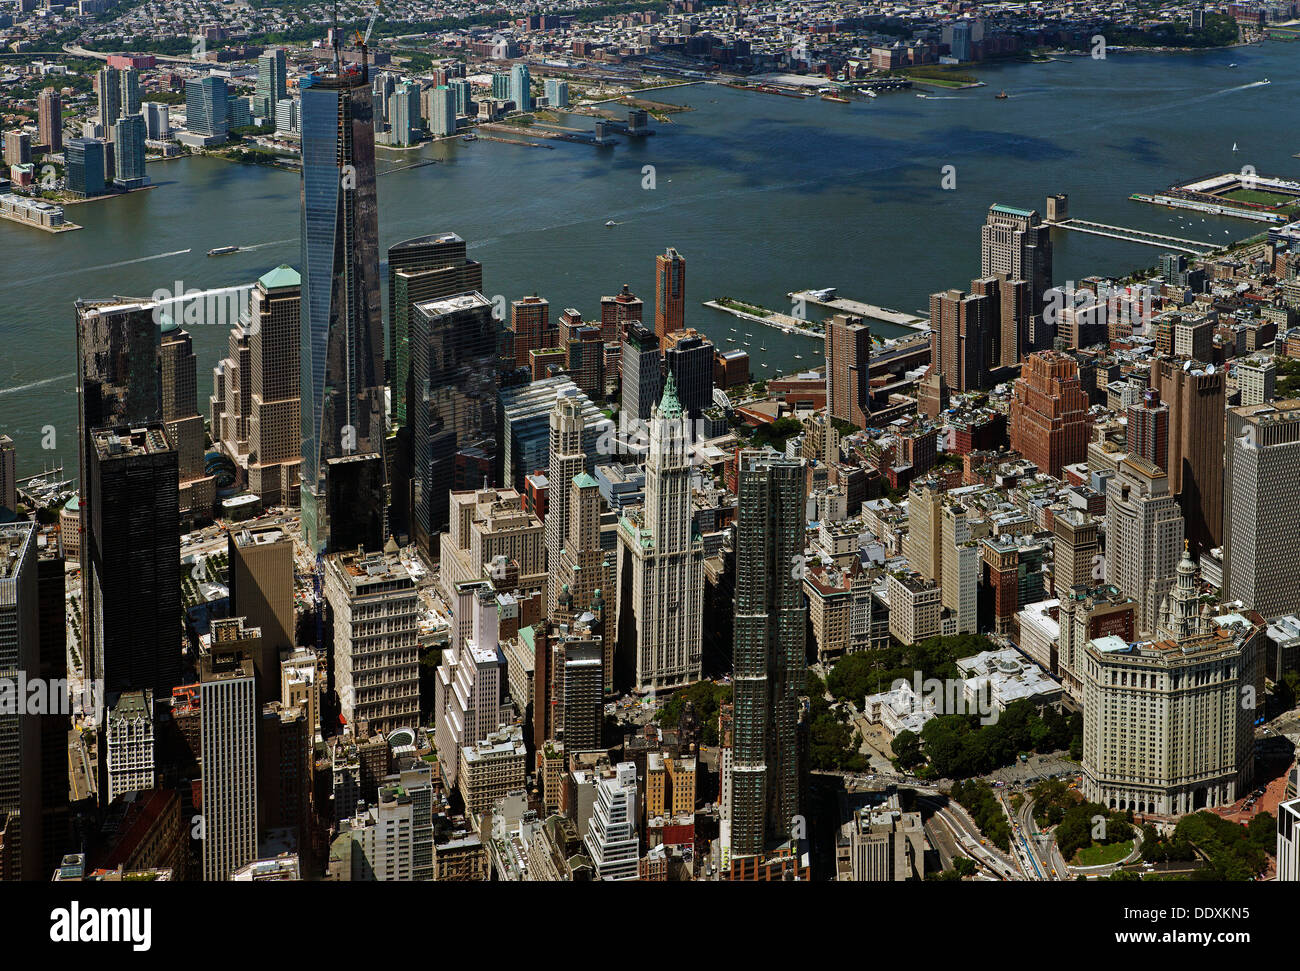 aerial photograph Freedom Tower, City Hall, Manhattan, New York City - Stock Image